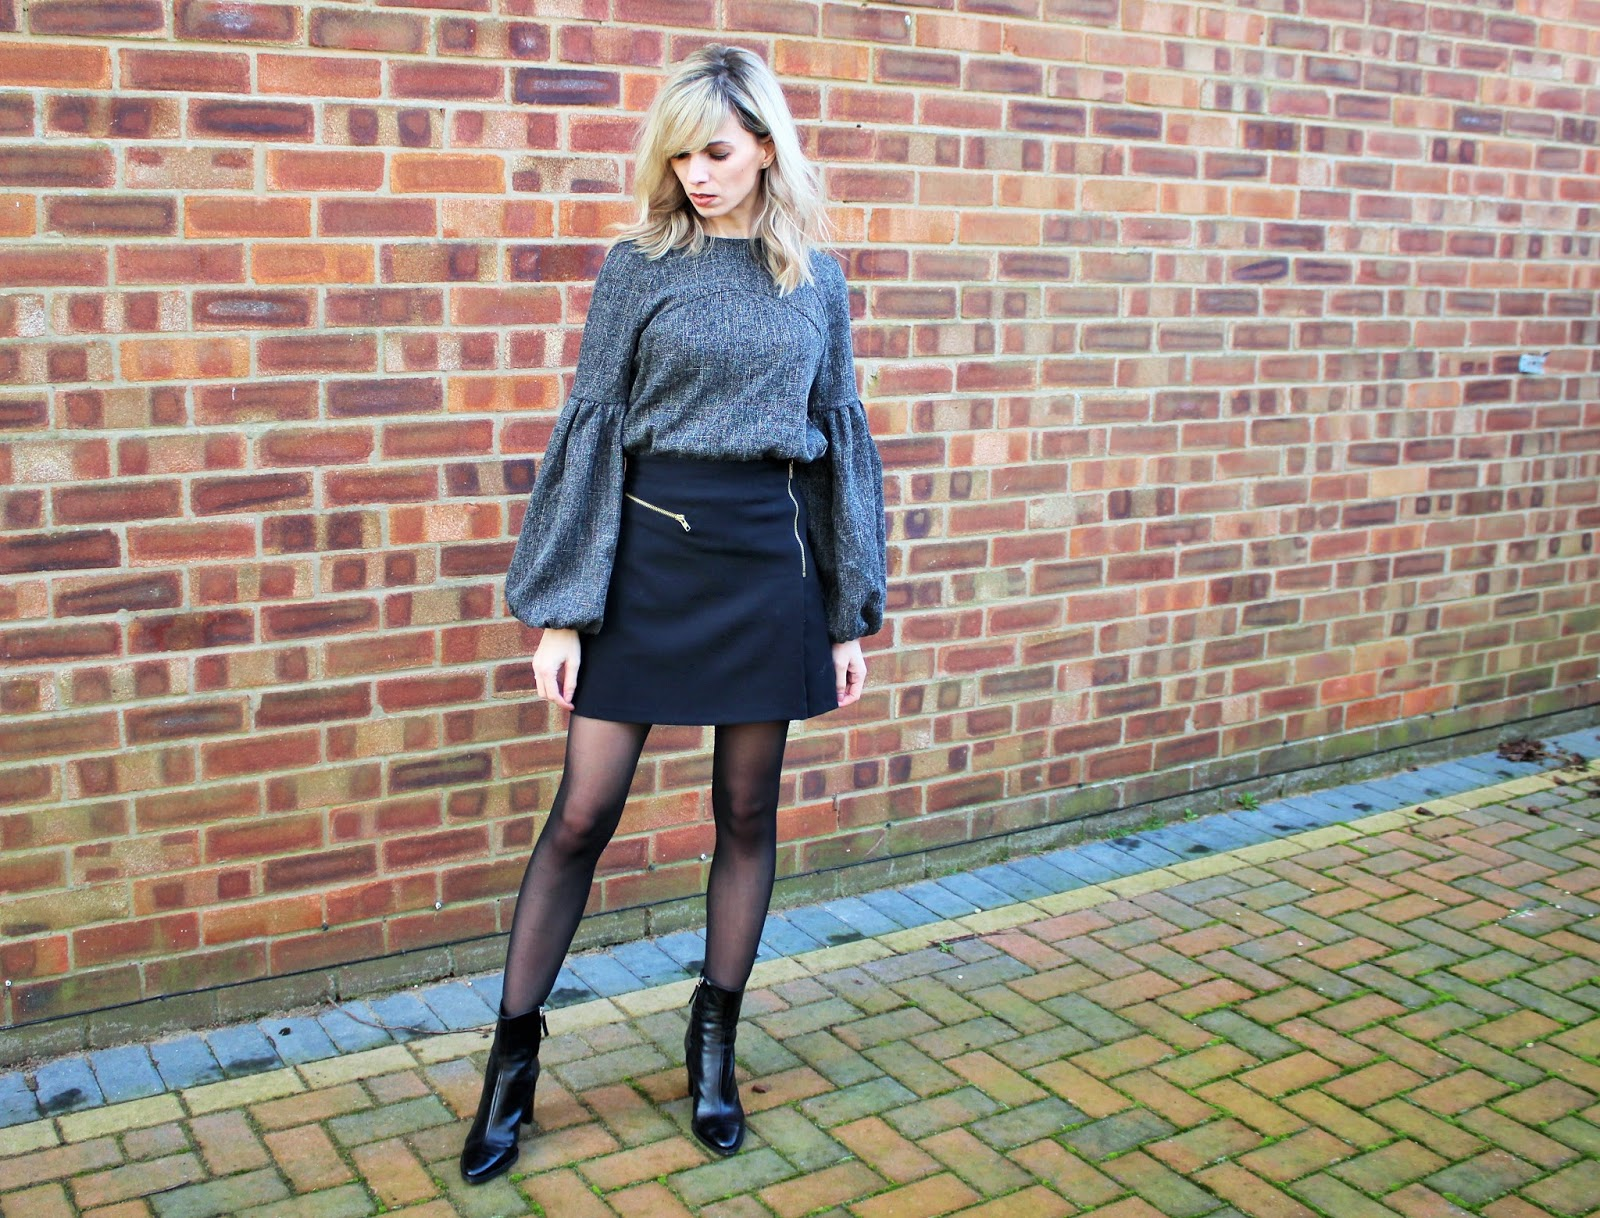 OOTD featuring Shein balloon sleeve top, Topshop A-line Skirt and Zara Ankle Boots - 6